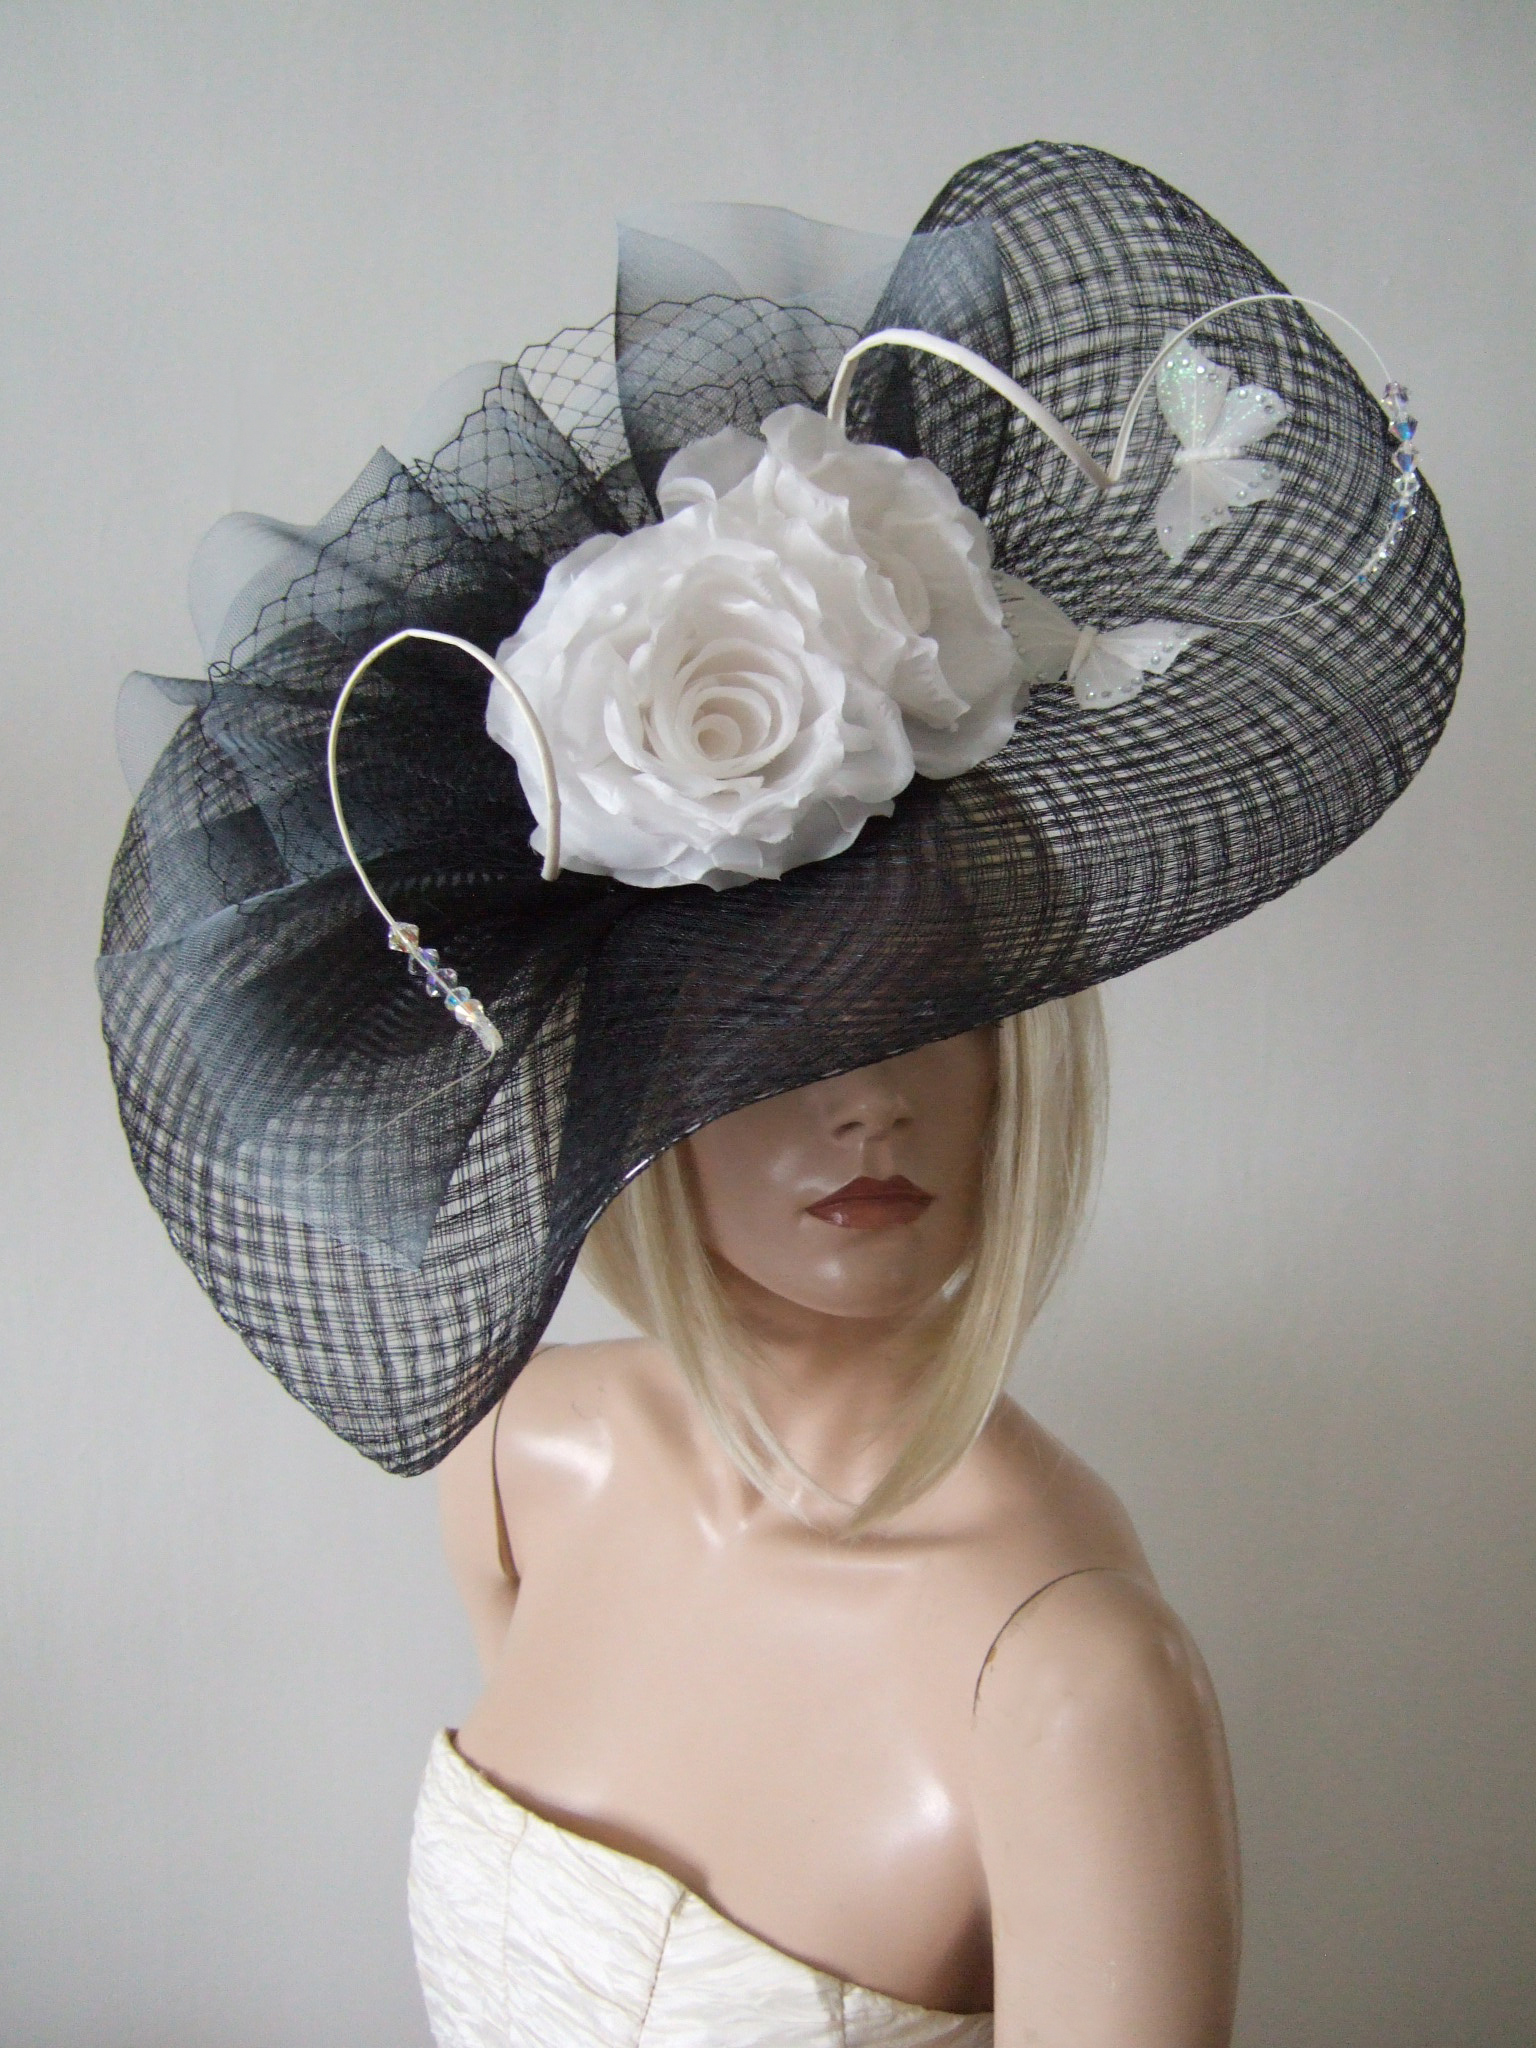 Wedding Guest Hats for Hire near London. Royal Ascot Hat Rental 2020. Big Black and White Hats. Best Royal Ascot Hats 2020. Black and White Hats for Hire 2020. Amazing Royal Ascot Hats 2020. Big Royal Ascot Hats. Hats to wear with a Black and White dress. Formal Wedding Hats for Hire UK 2020. Amazing Hats for the Races 2020.